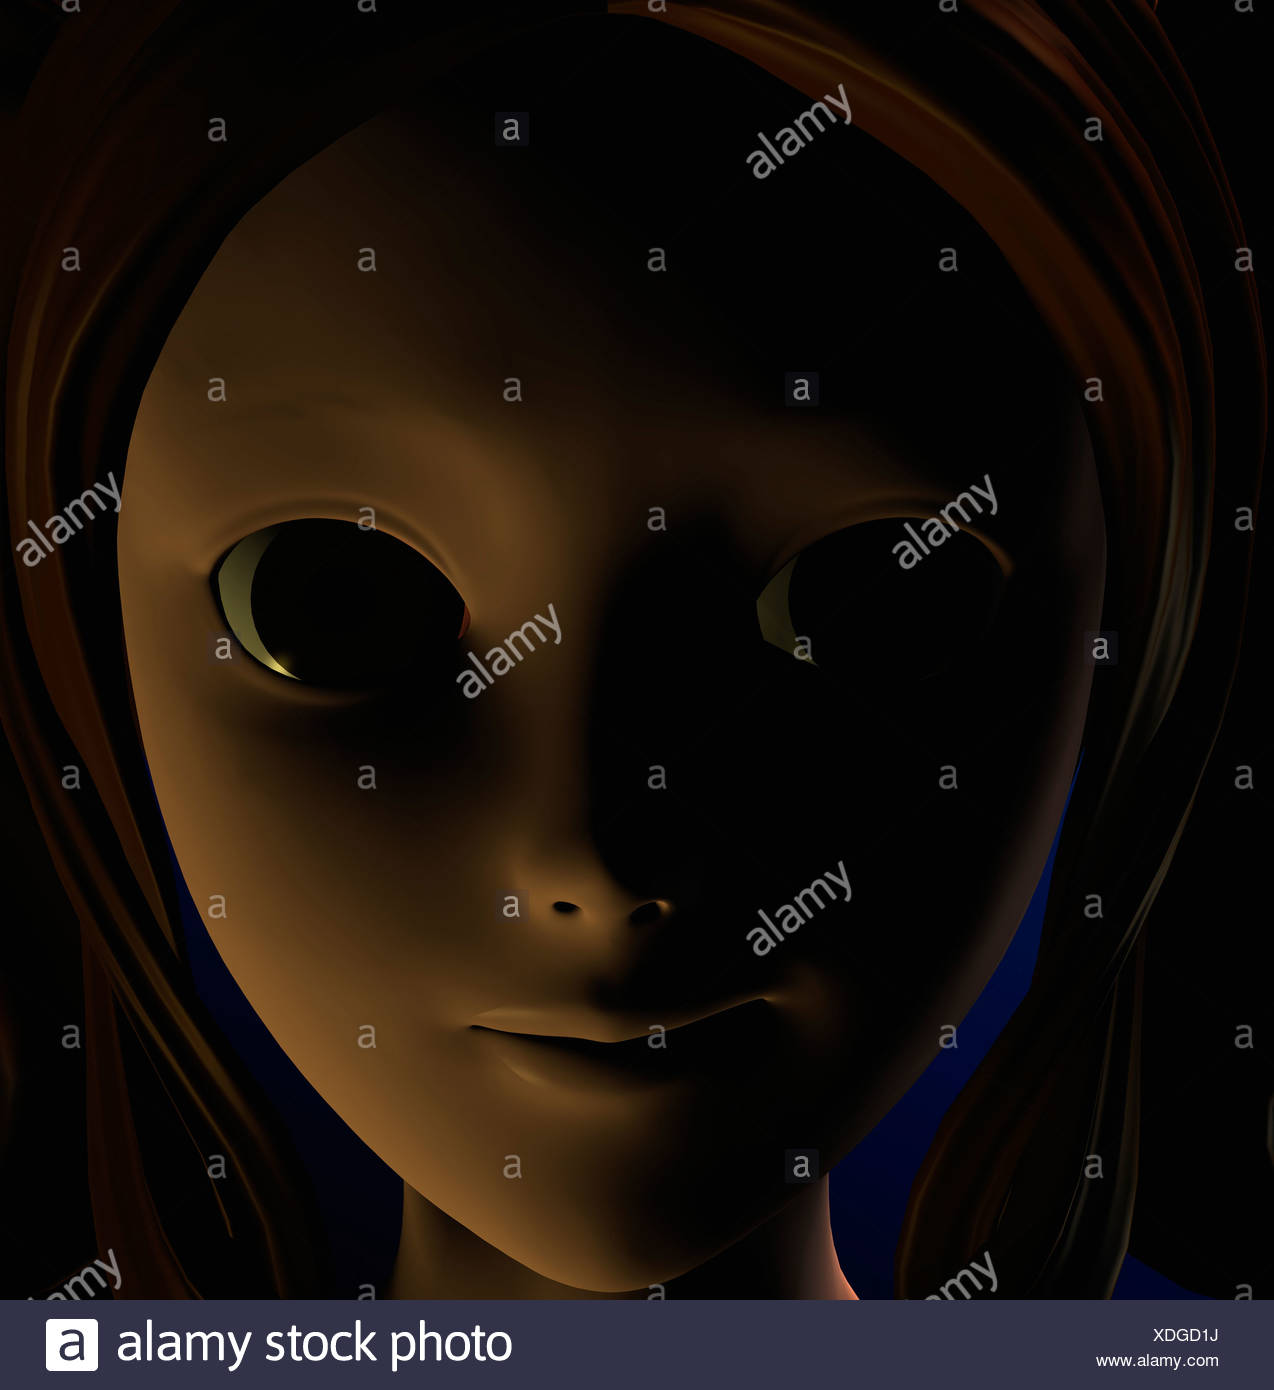 Computer Illustration Of Young Woman Looking Into Camera - Stock Image